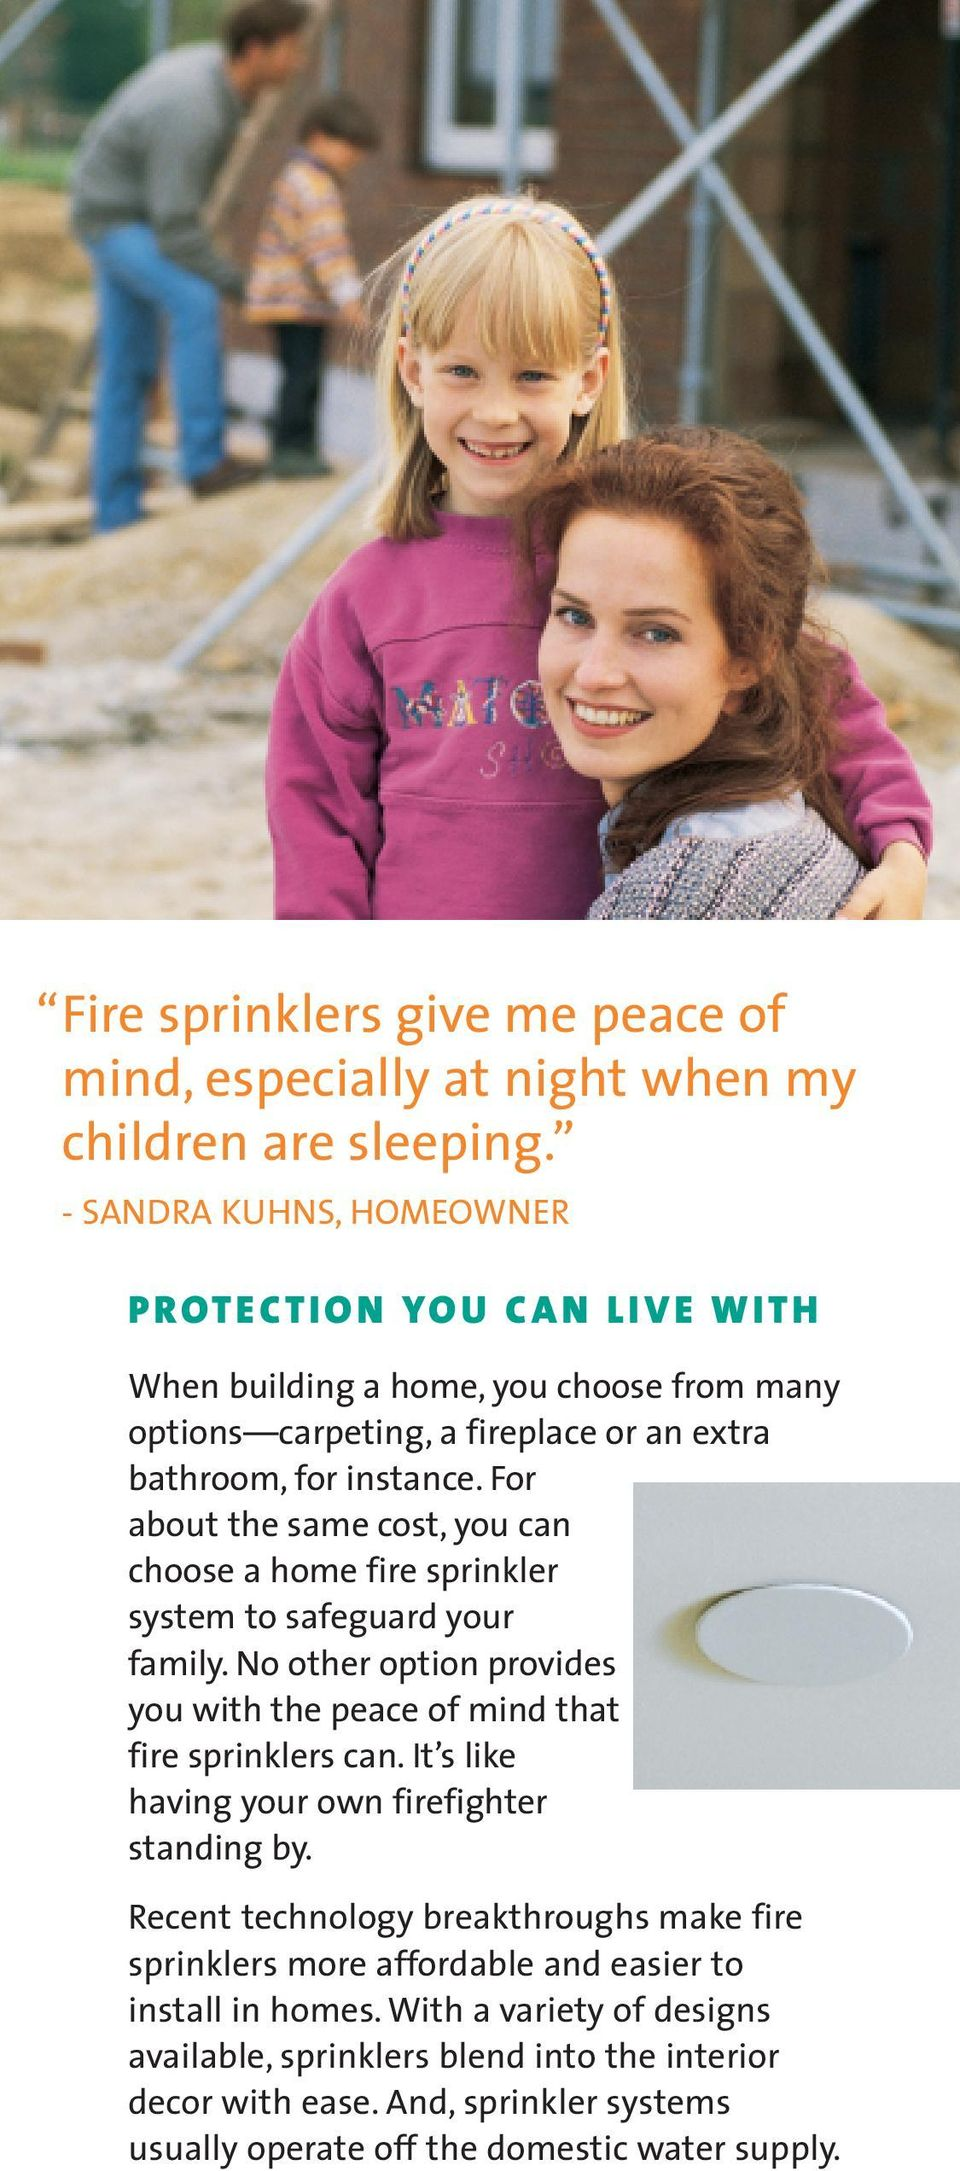 For about the same cost, you can choose a home fire sprinkler system to safeguard your family. No other option provides you with the peace of mind that fire sprinklers can.